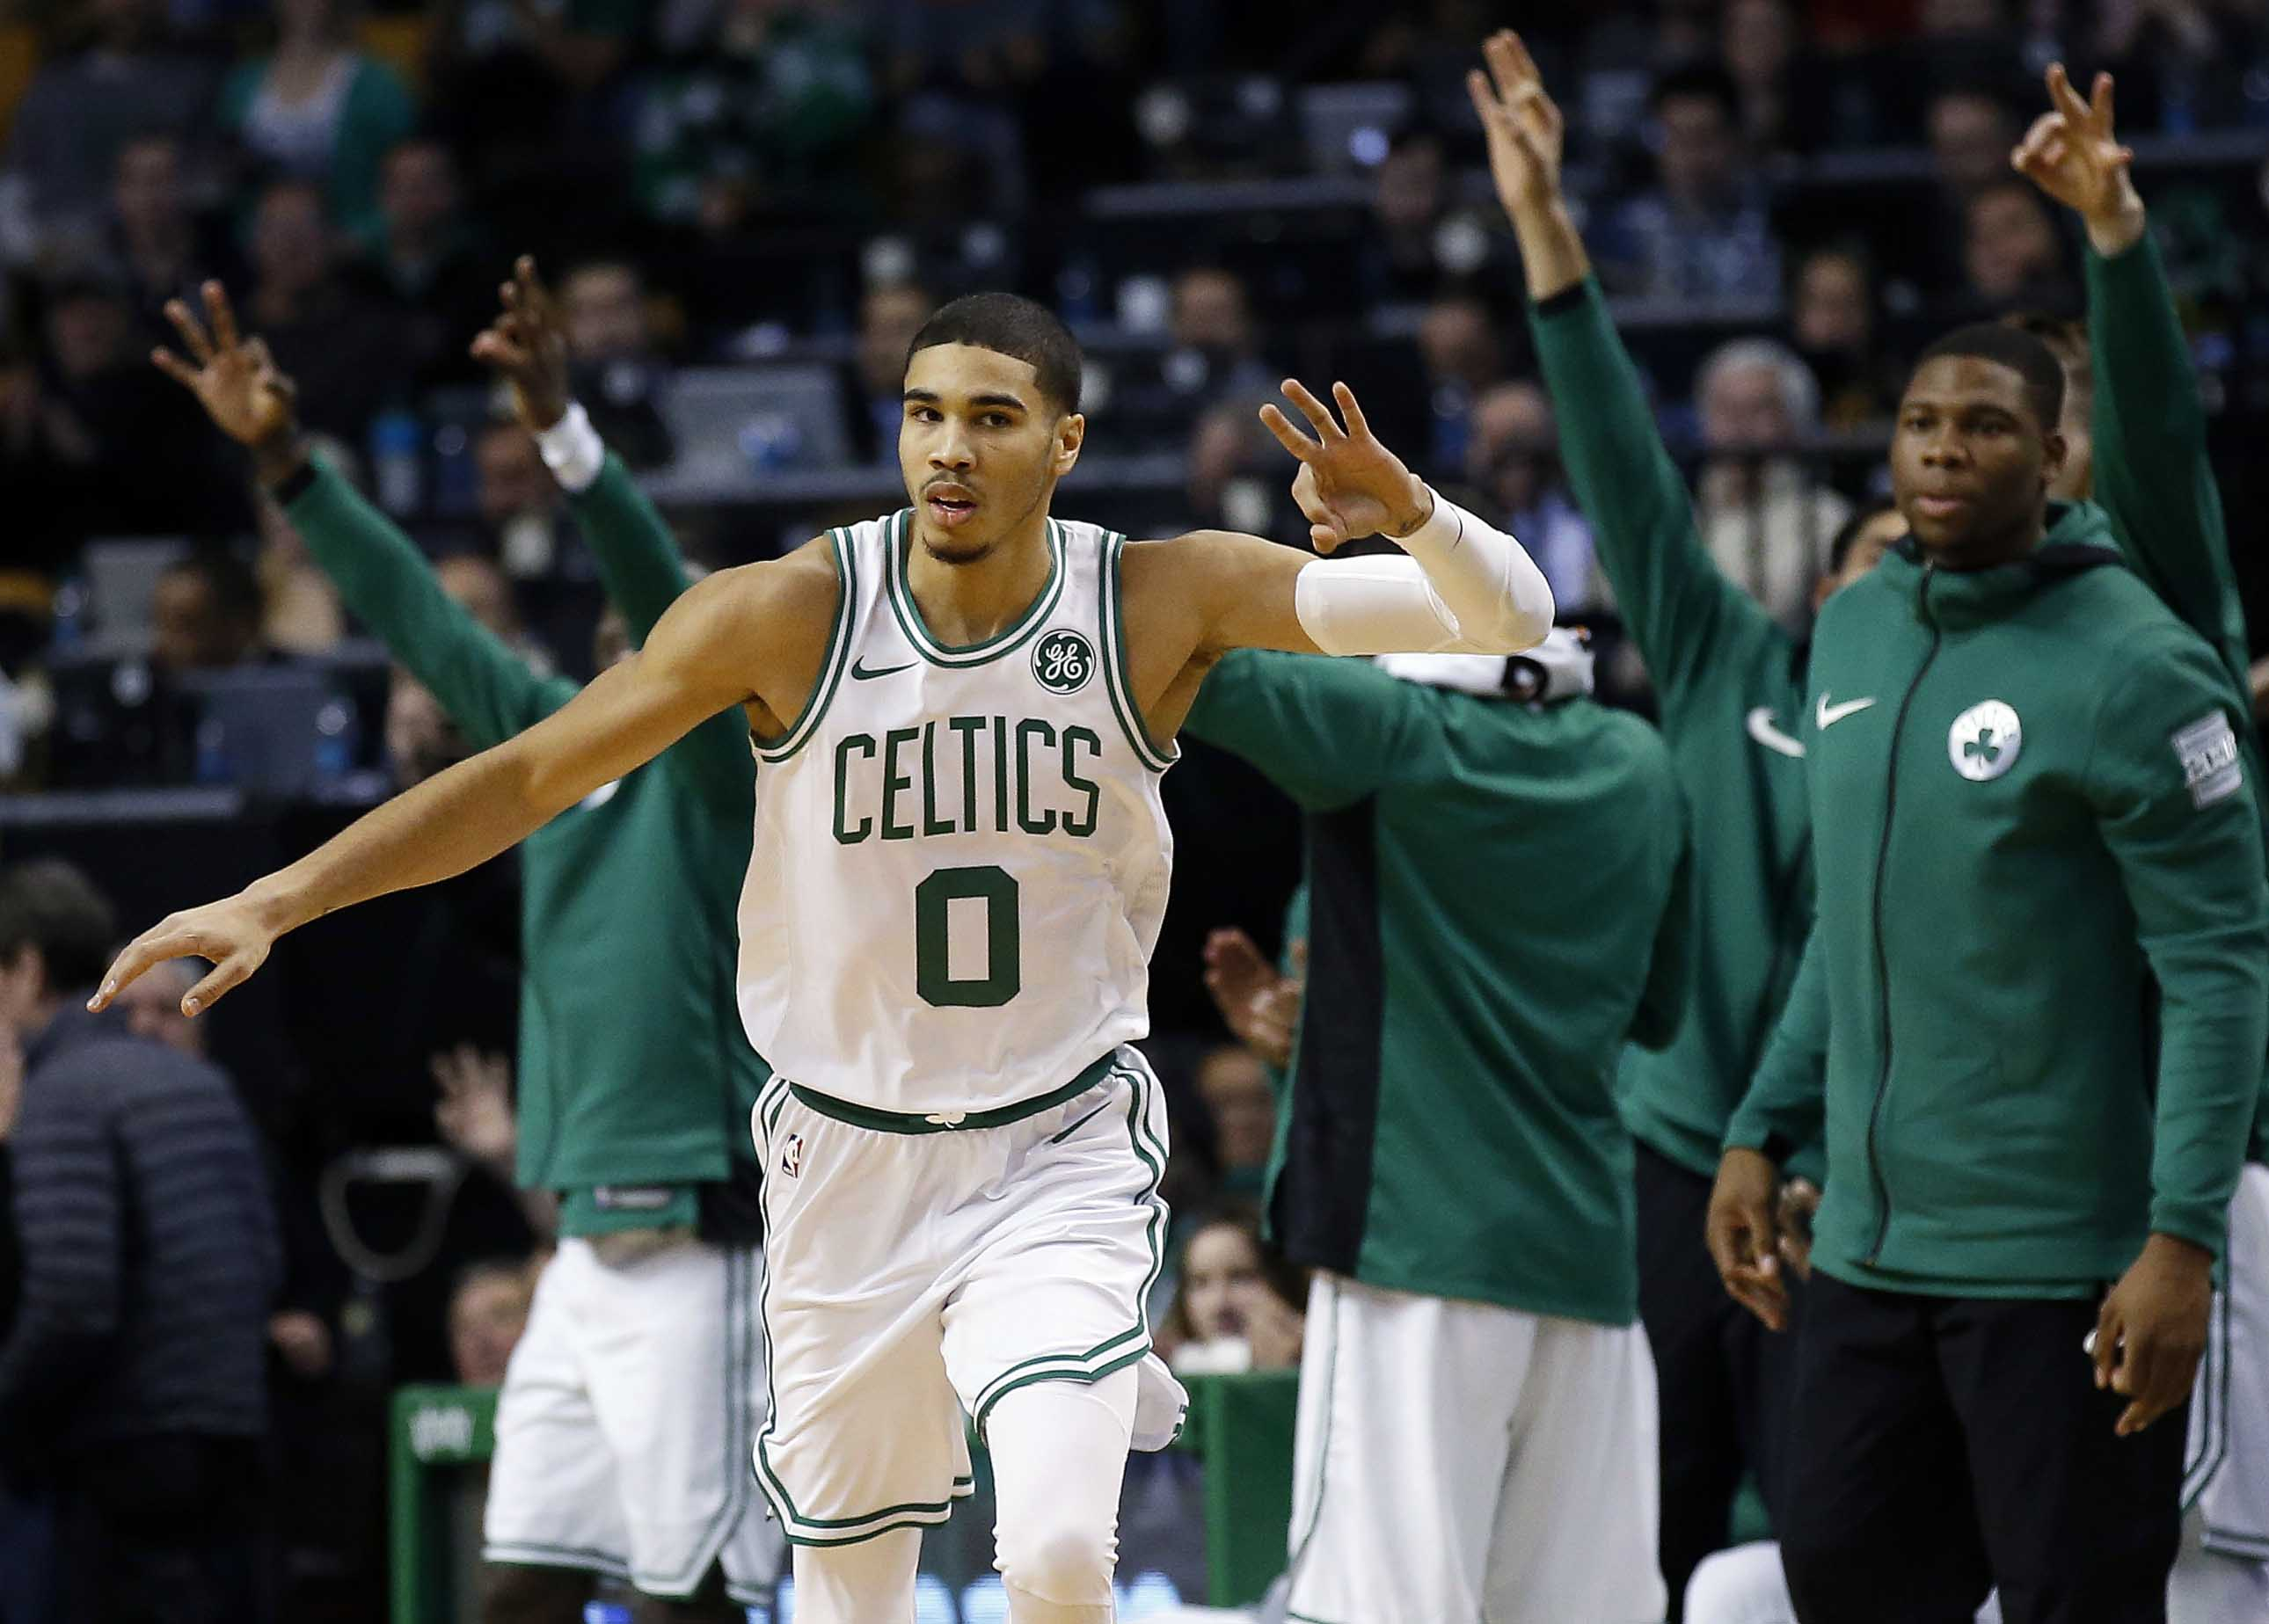 RECAP: Celtics Win Ugly Without Horford